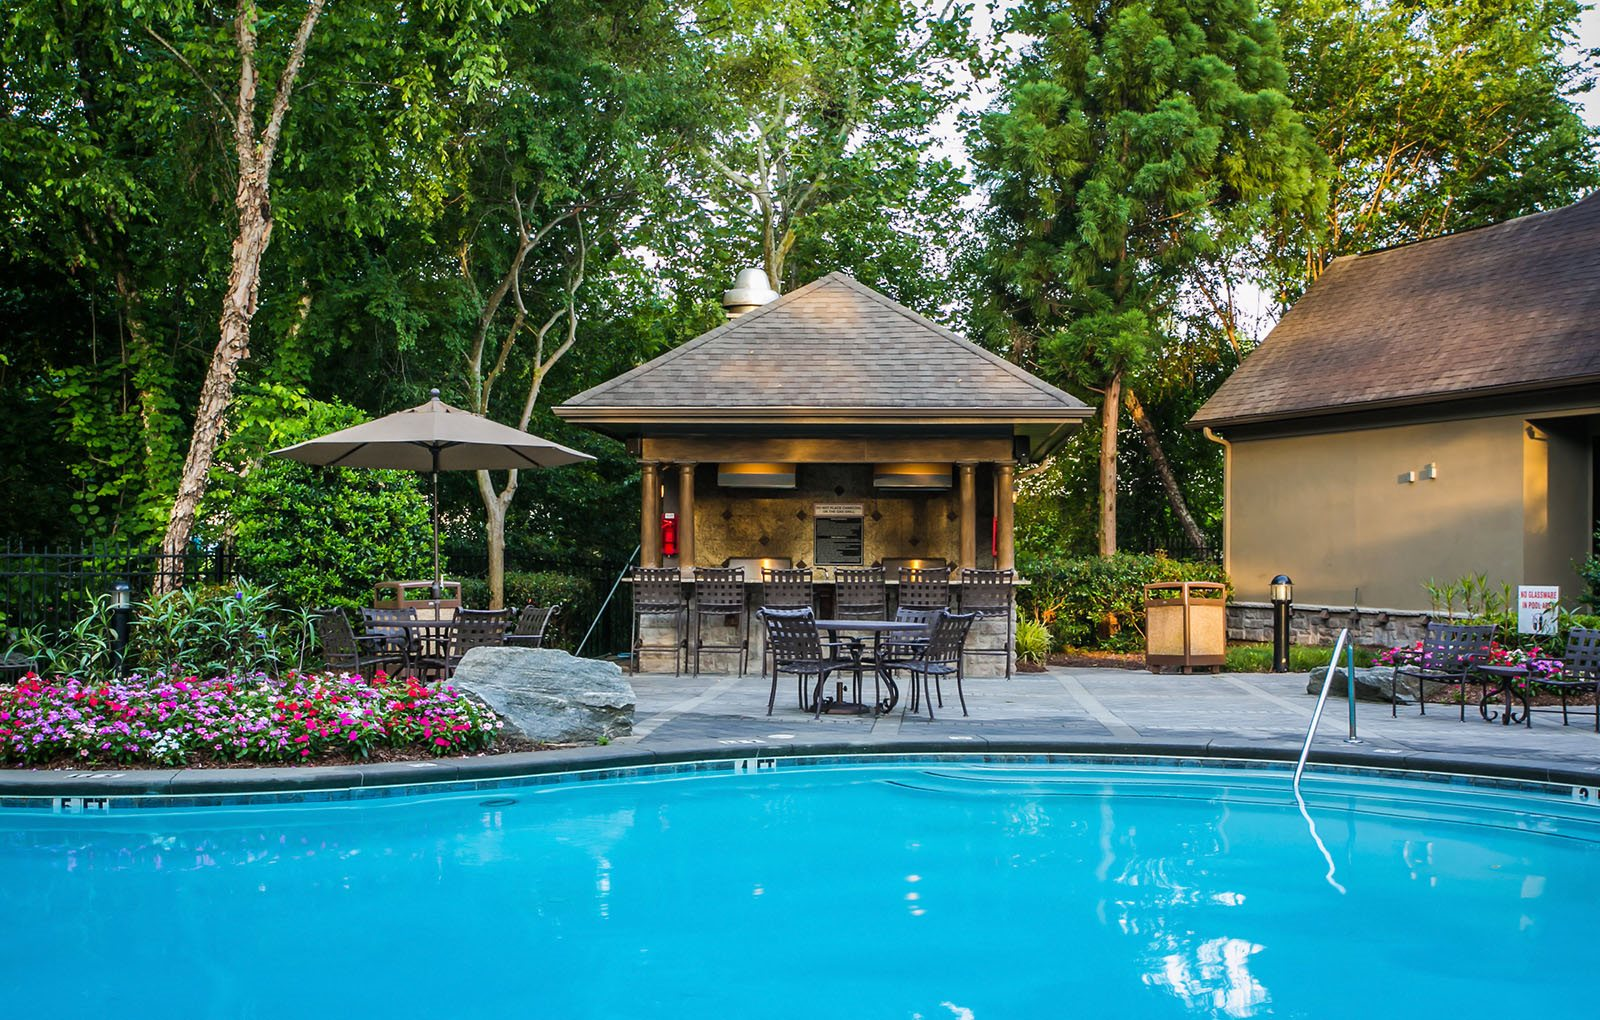 Crystal Clear Swimming Pool and Cabana at Stone Creek at Brookhaven Apartment Homes in Atlanta, GA 30329